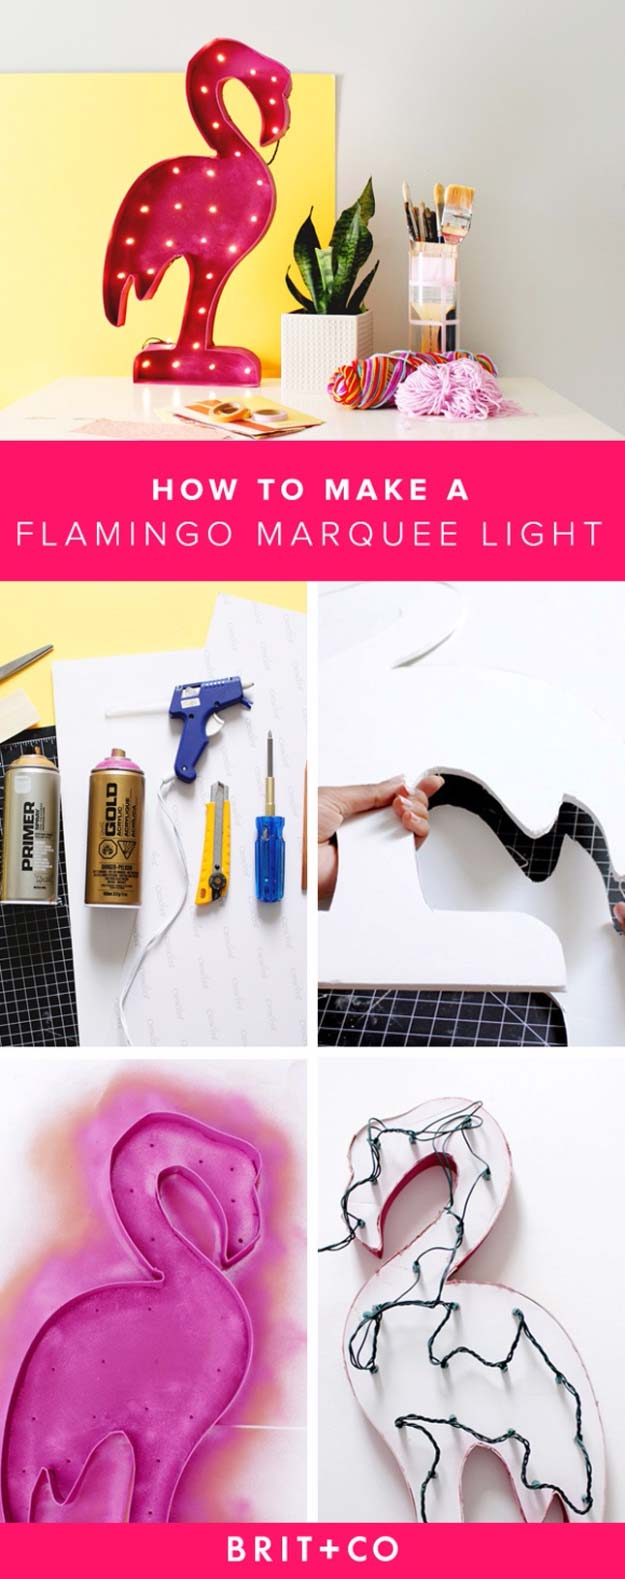 Cool Ways To Use Christmas Lights - Flamingo Marquee Light - Best Easy DIY Ideas for String Lights for Room Decoration, Home Decor and Creative DIY Bedroom Lighting - Creative Christmas Light Tutorials with Step by Step Instructions - Creative Crafts and DIY Projects for Teens, Teenagers and Adults #diyideas #stringlights #diydecor #teencrafts